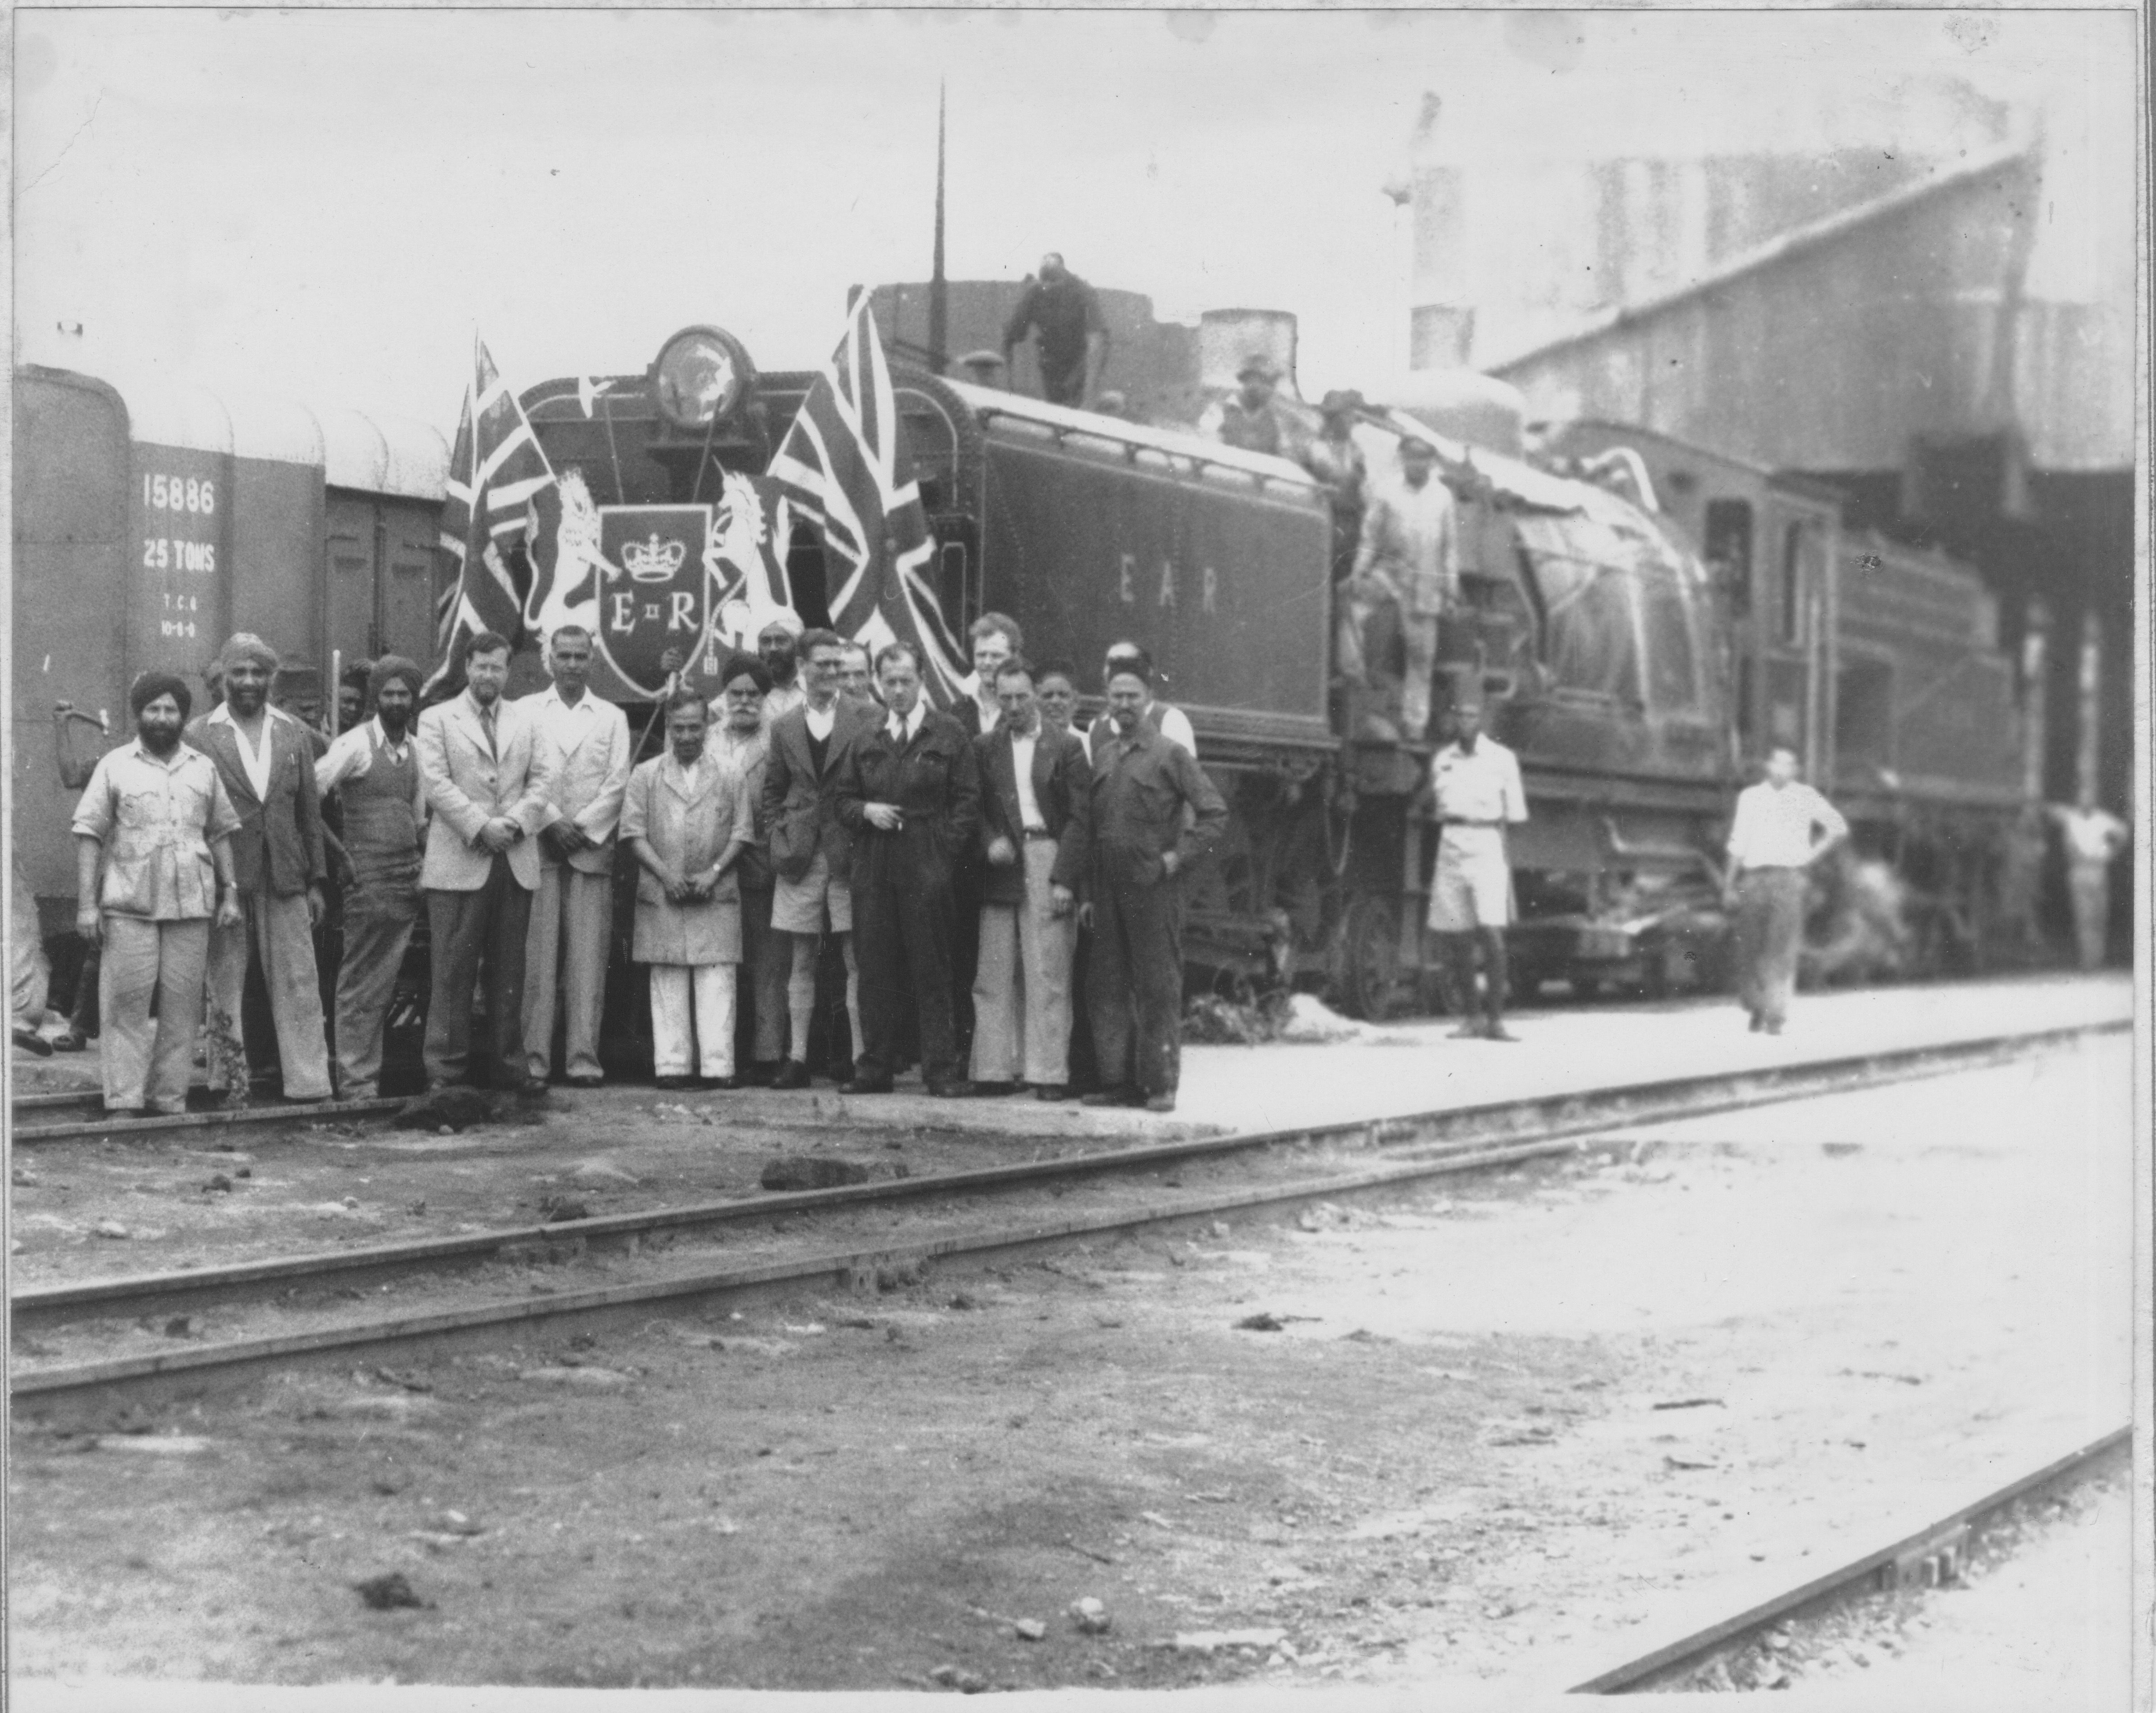 East African Railways, Nairobi, Kenya (My Dad, Neil Rossenrode is standing at the back, 5th in from the right)